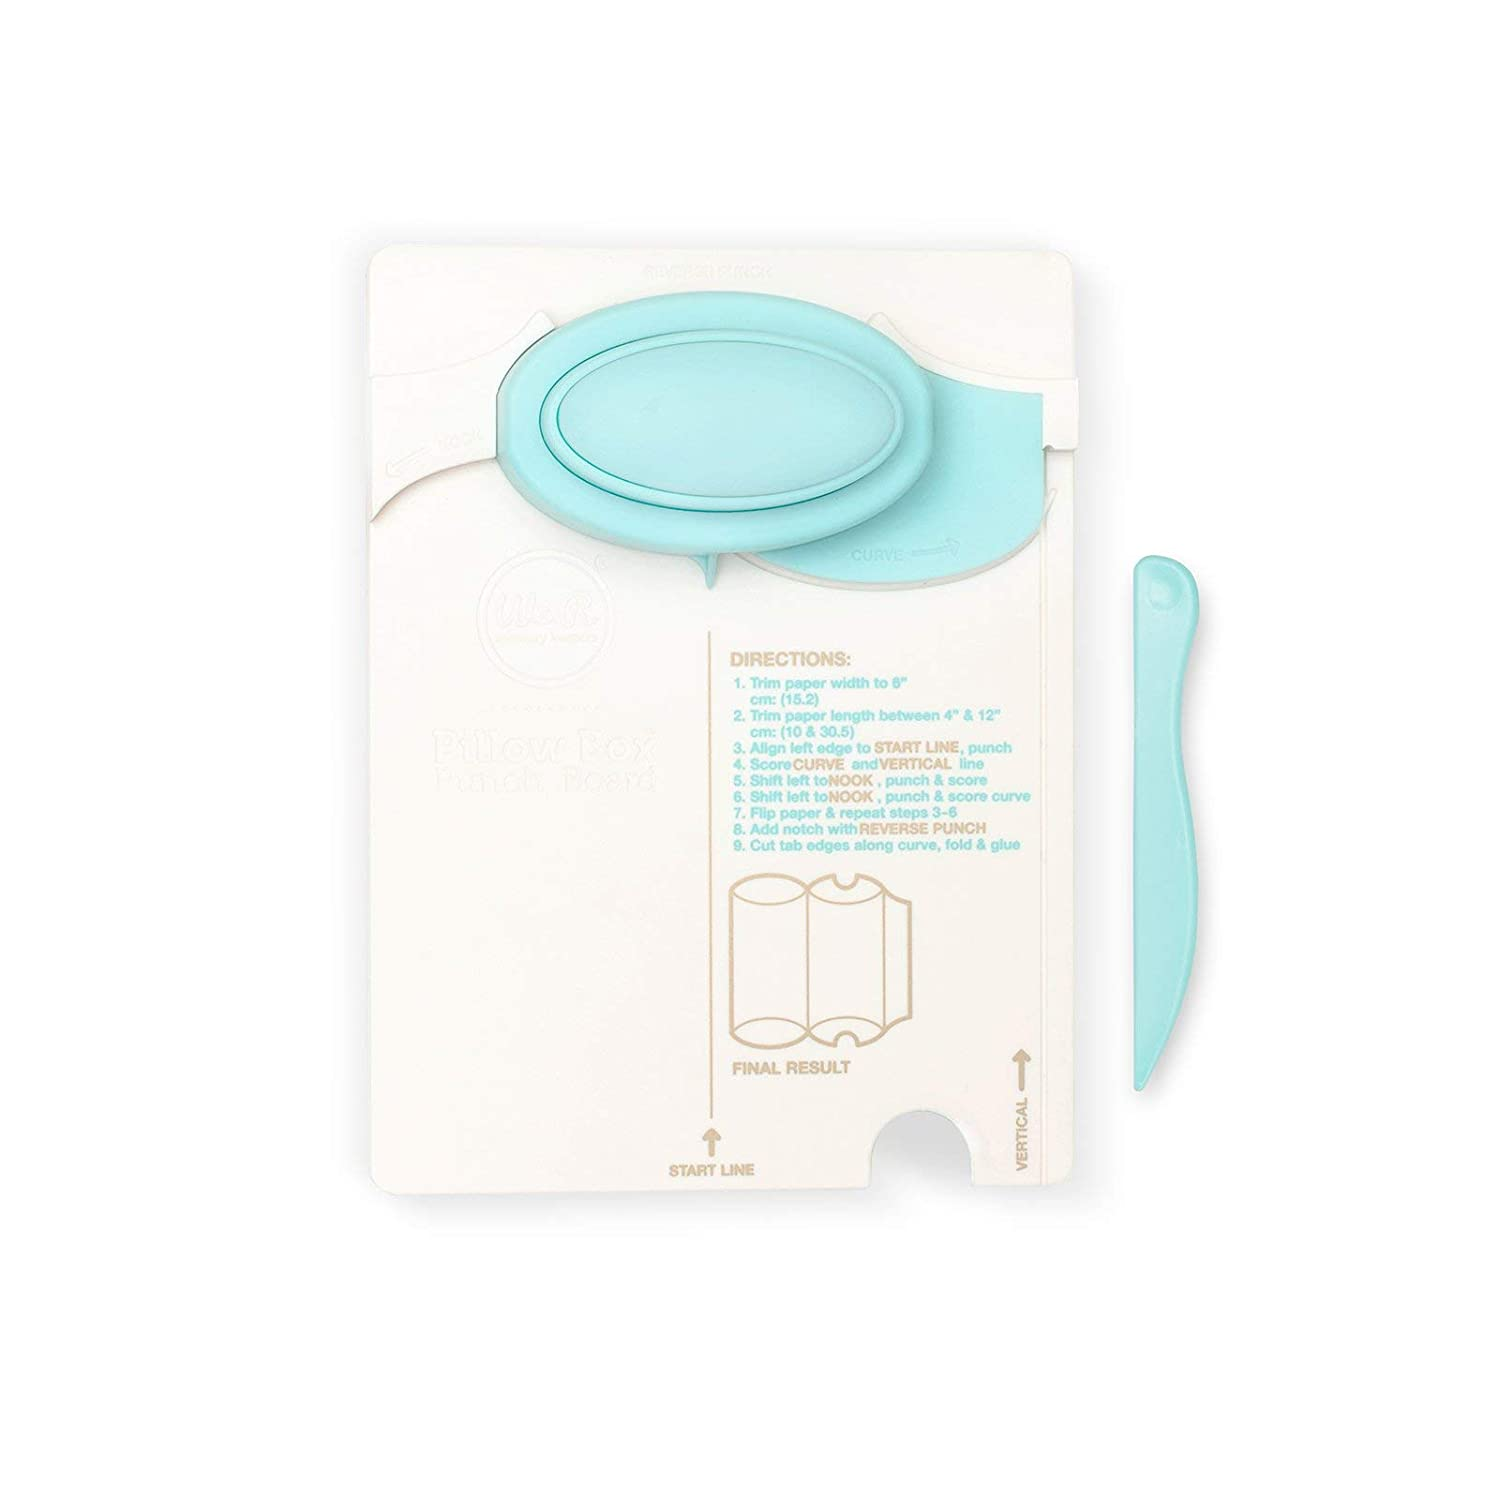 We R Memory Keepers Pillow Box Punch Board Includes punch board and detachable scoring tool